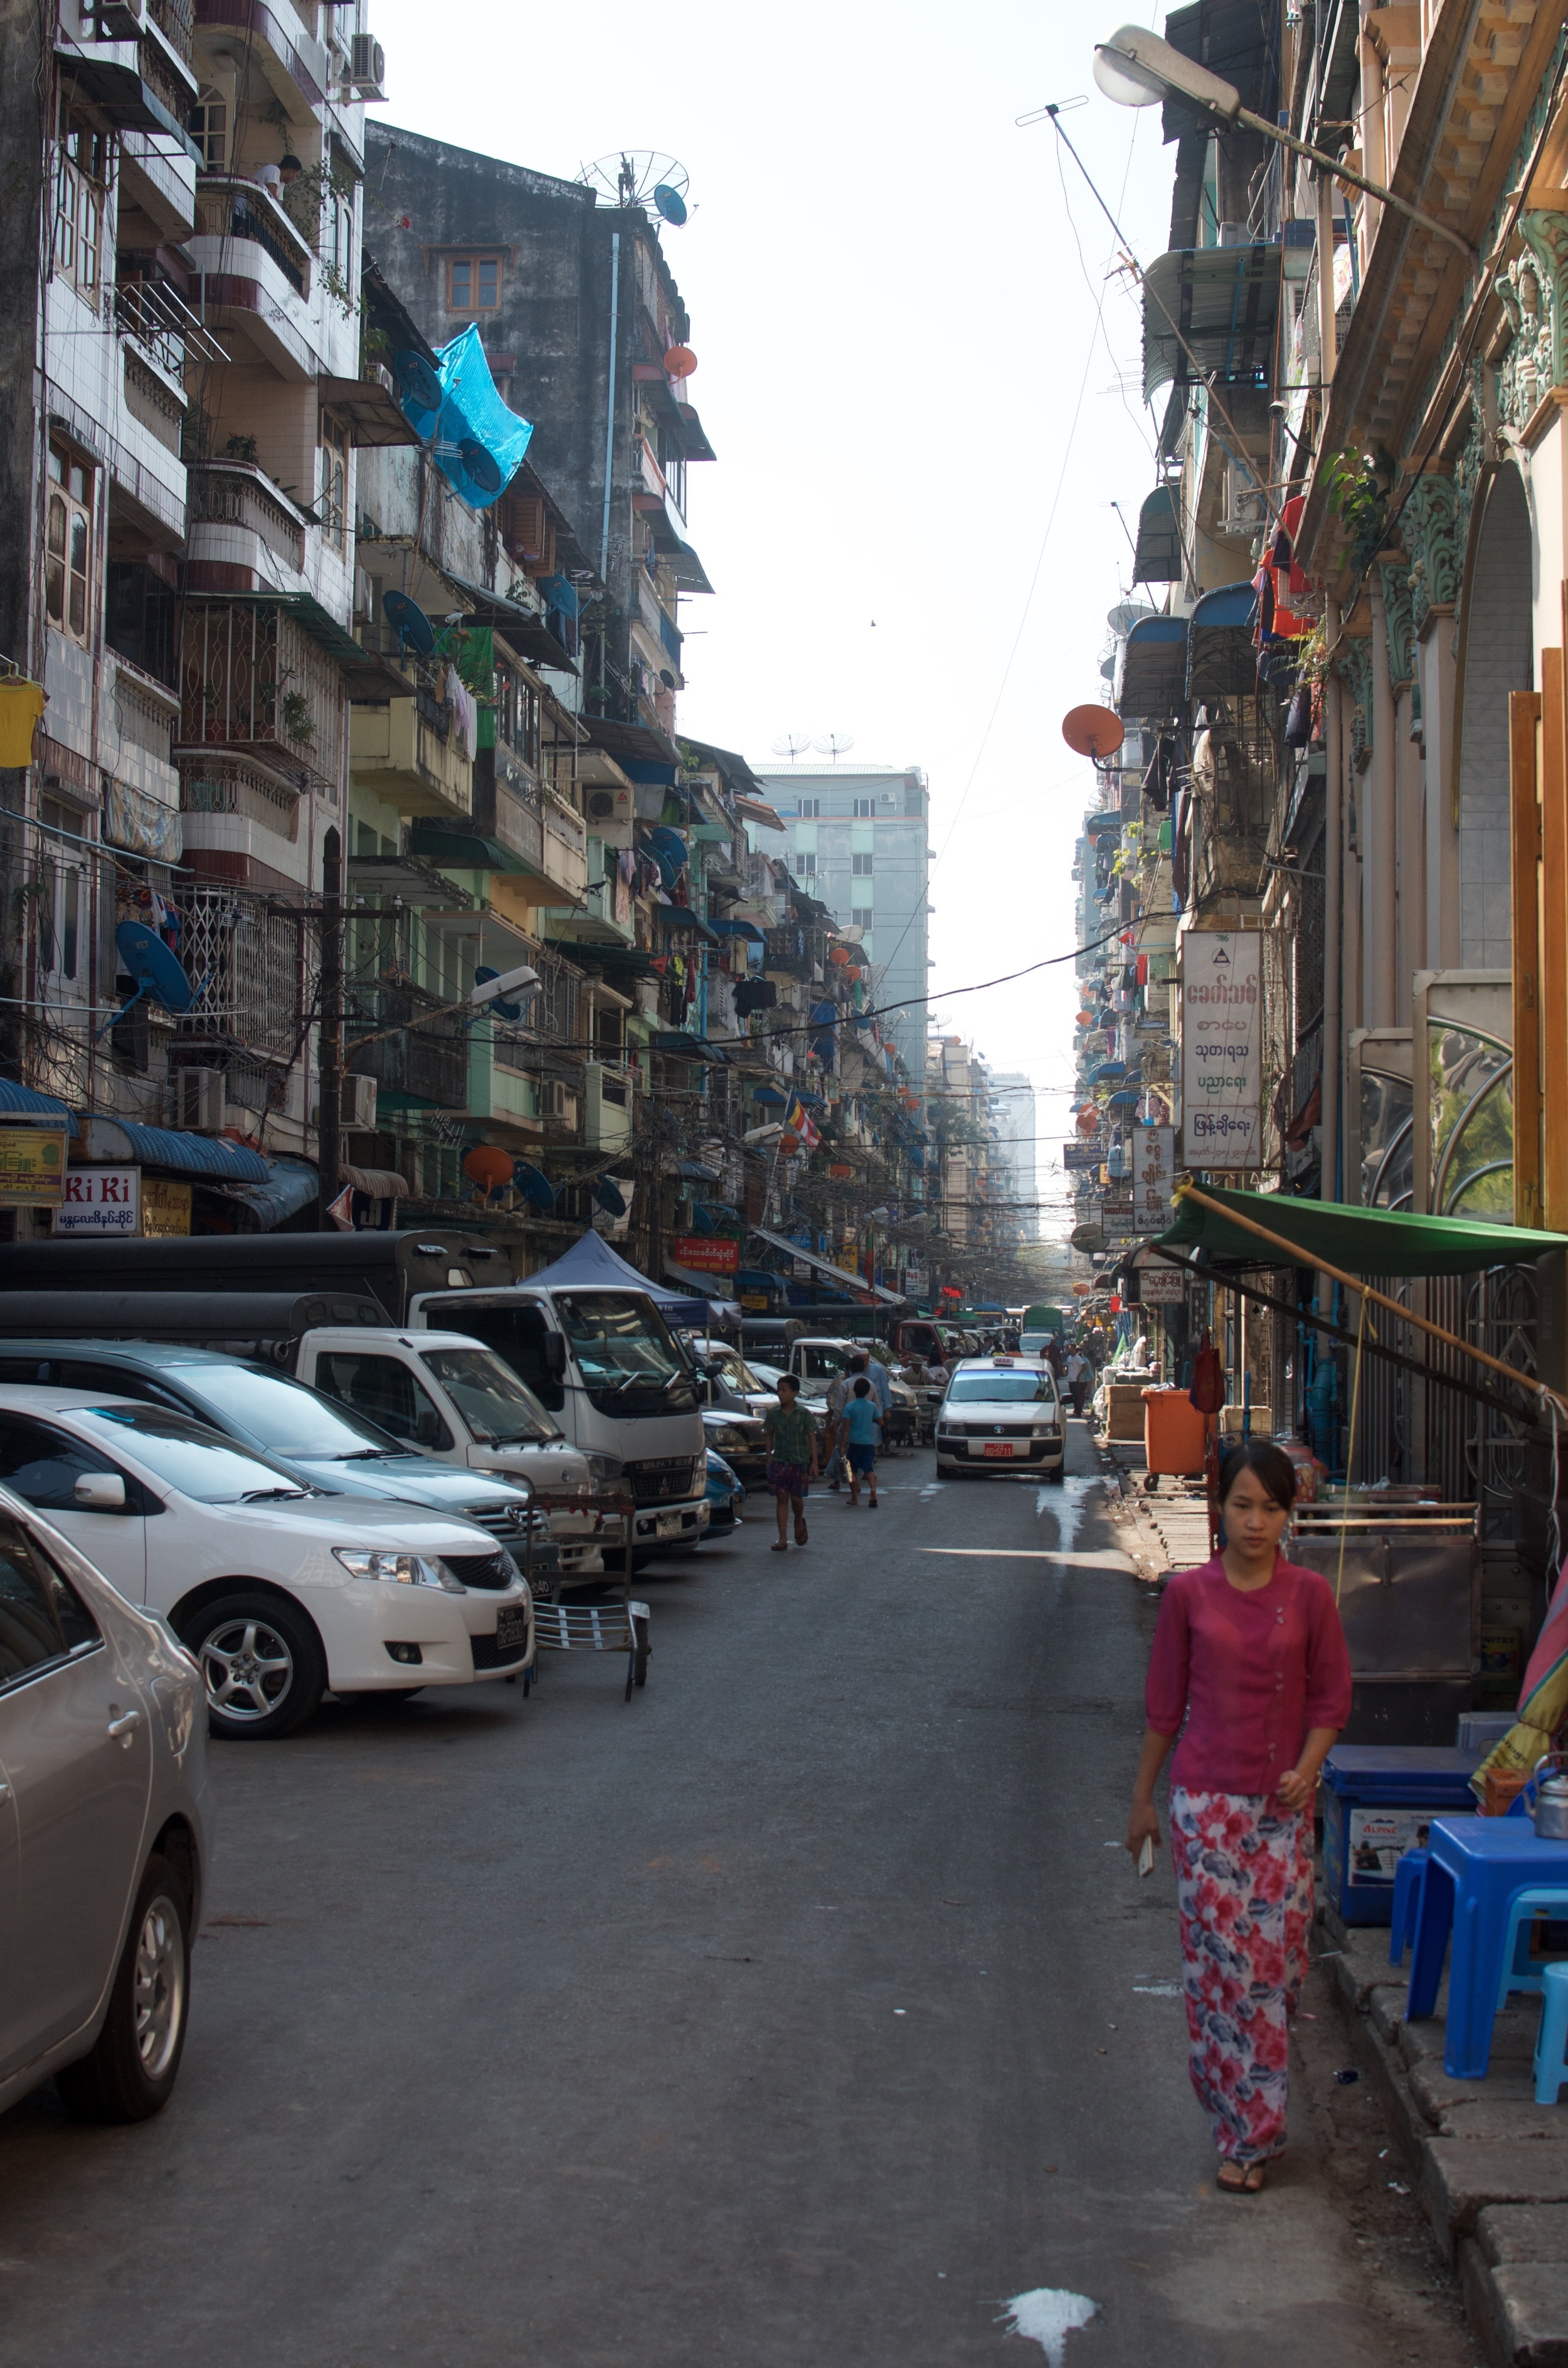 One of the many typical side streets. Packed to the rafters with shops, apartments, and people living on top of each other.